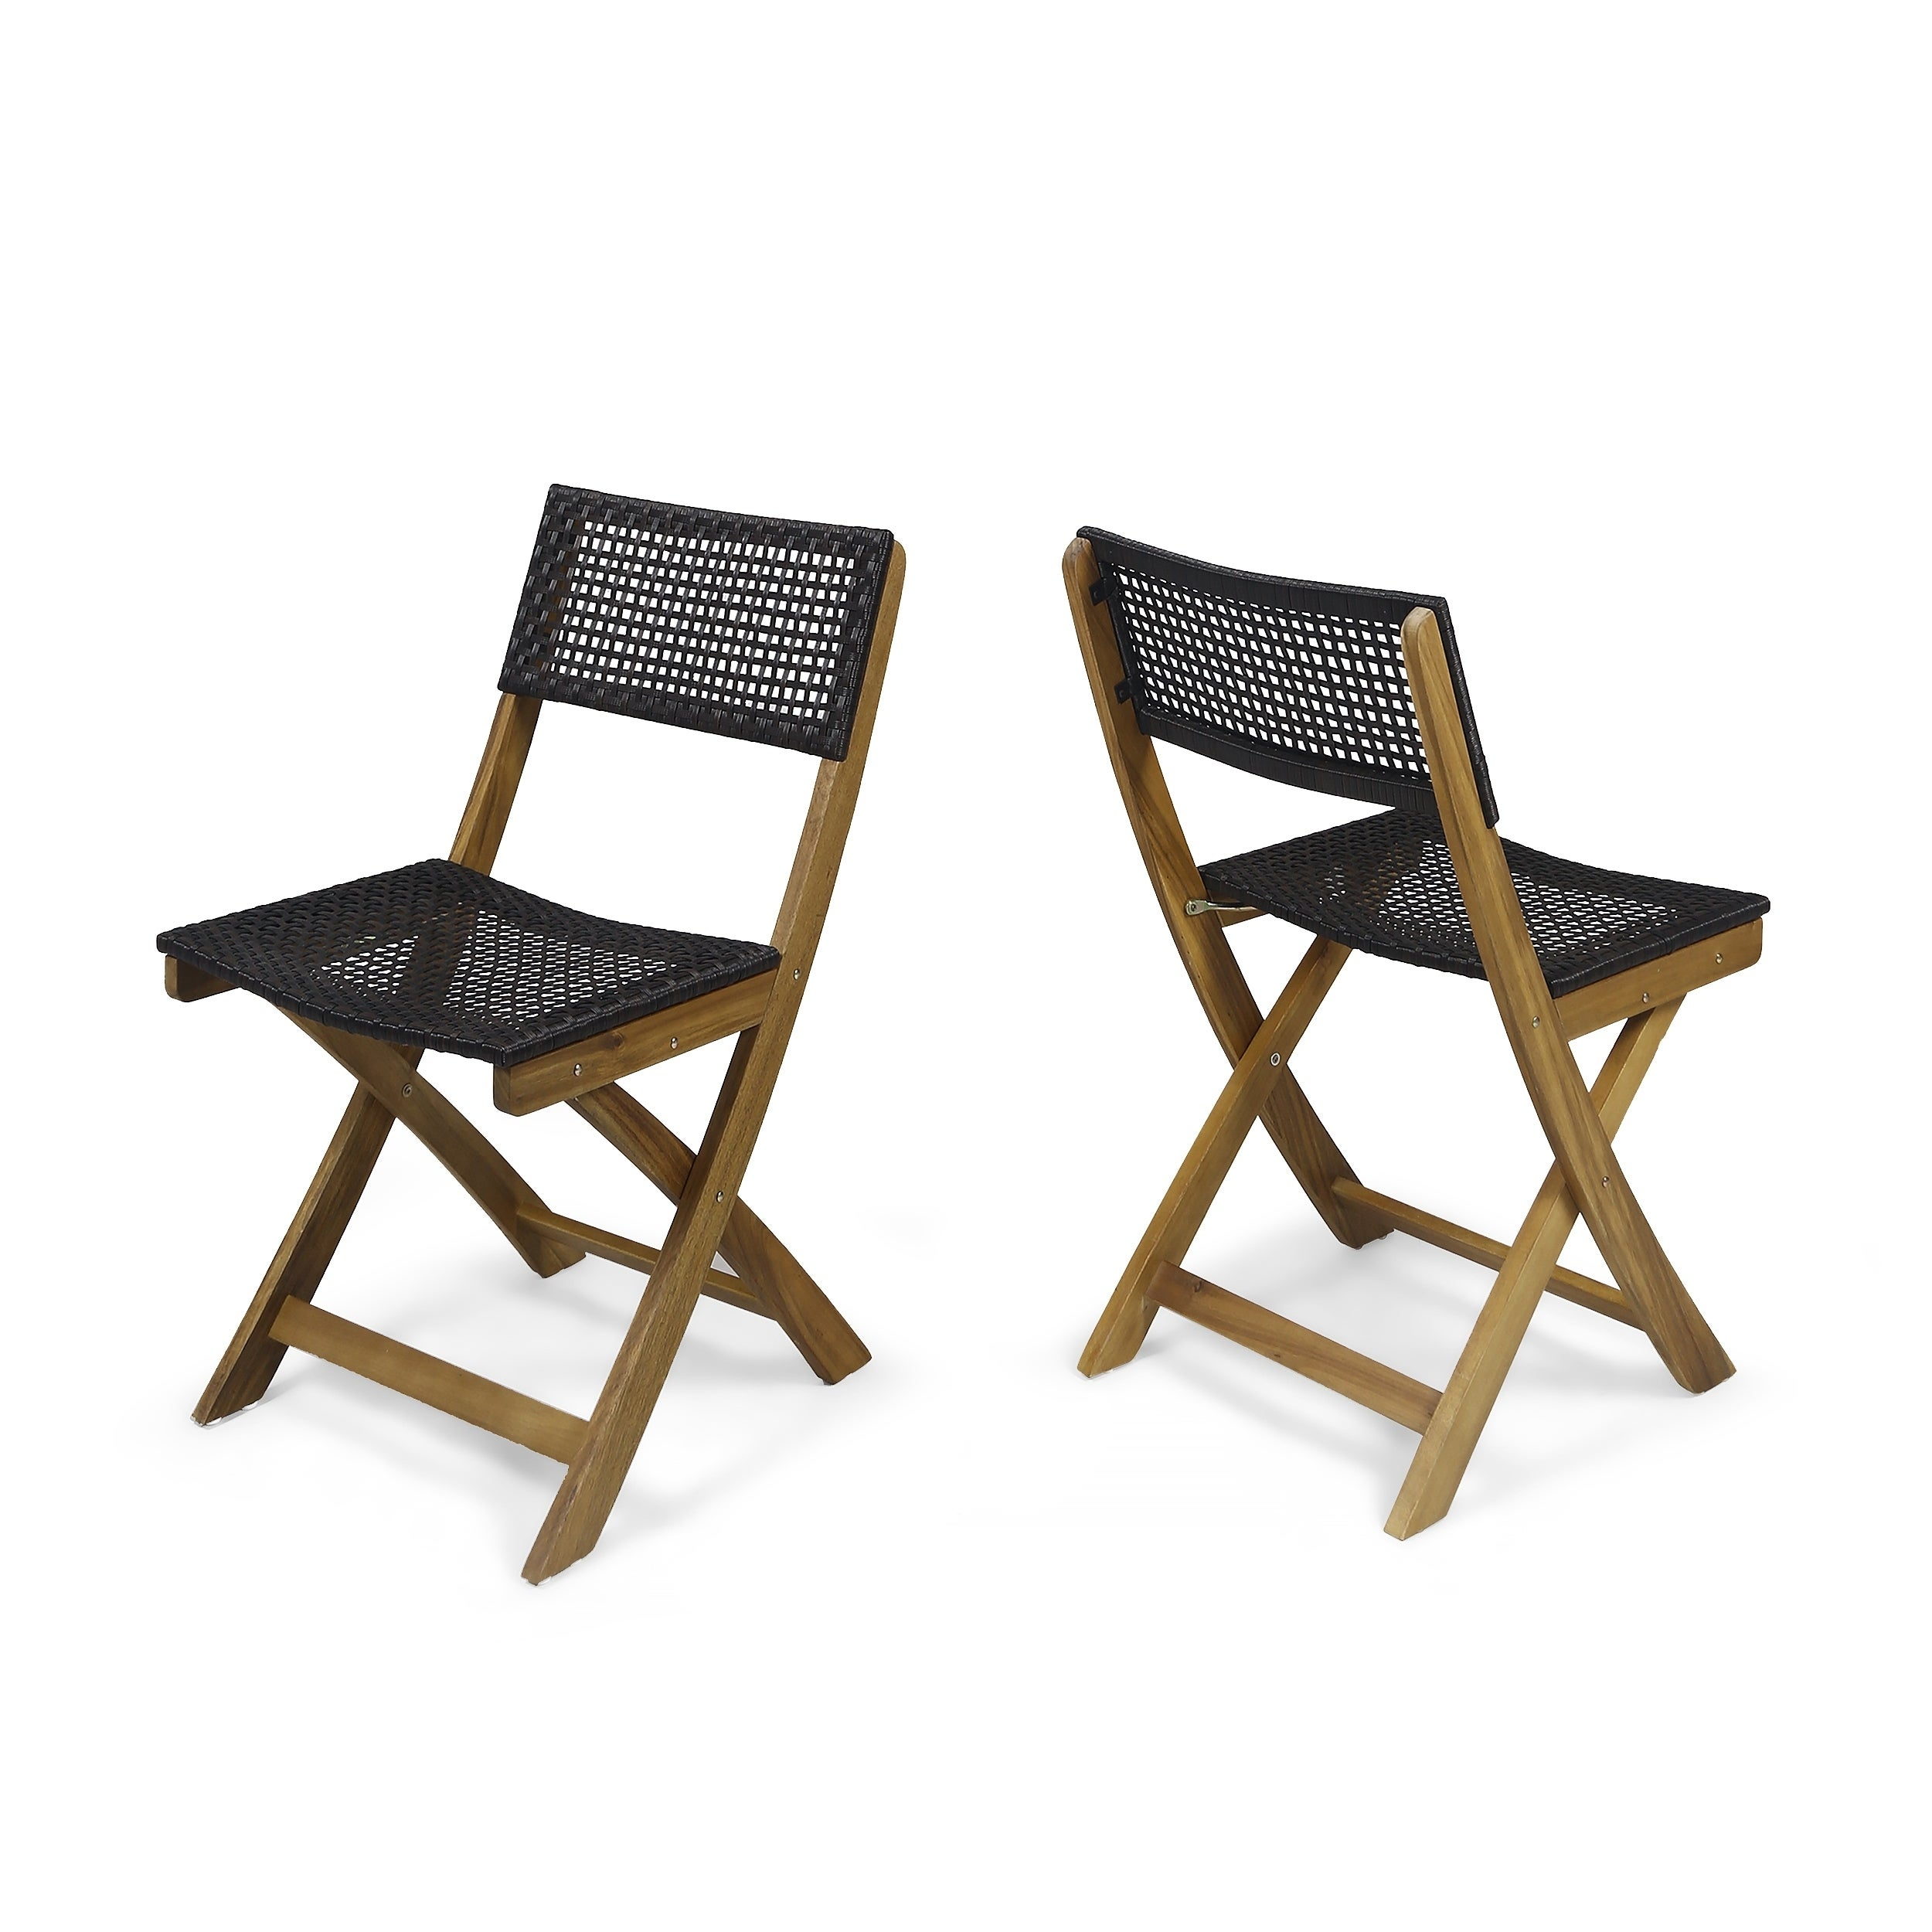 Christopher Knight Home Hillside Brown Wood And Wicker Foldable Outdoor Bistro Chairs Set Of 2